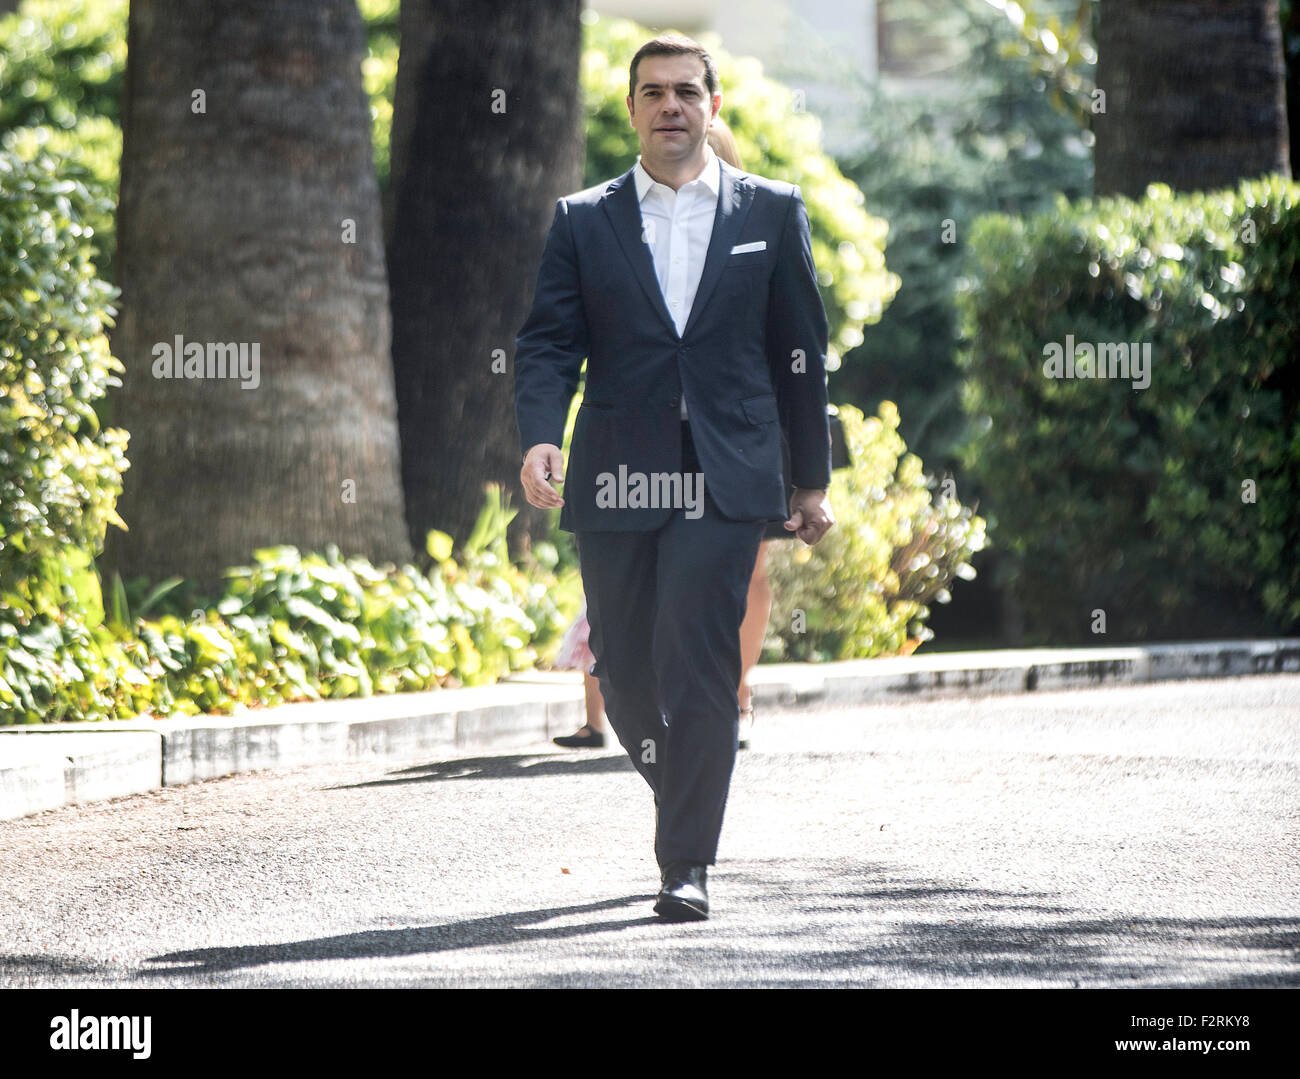 Athens, Greece. 23th Sep, 2015.. Greek Prime Minister Alexis Tsipras exits the presidential palace after swearing - Stock Image